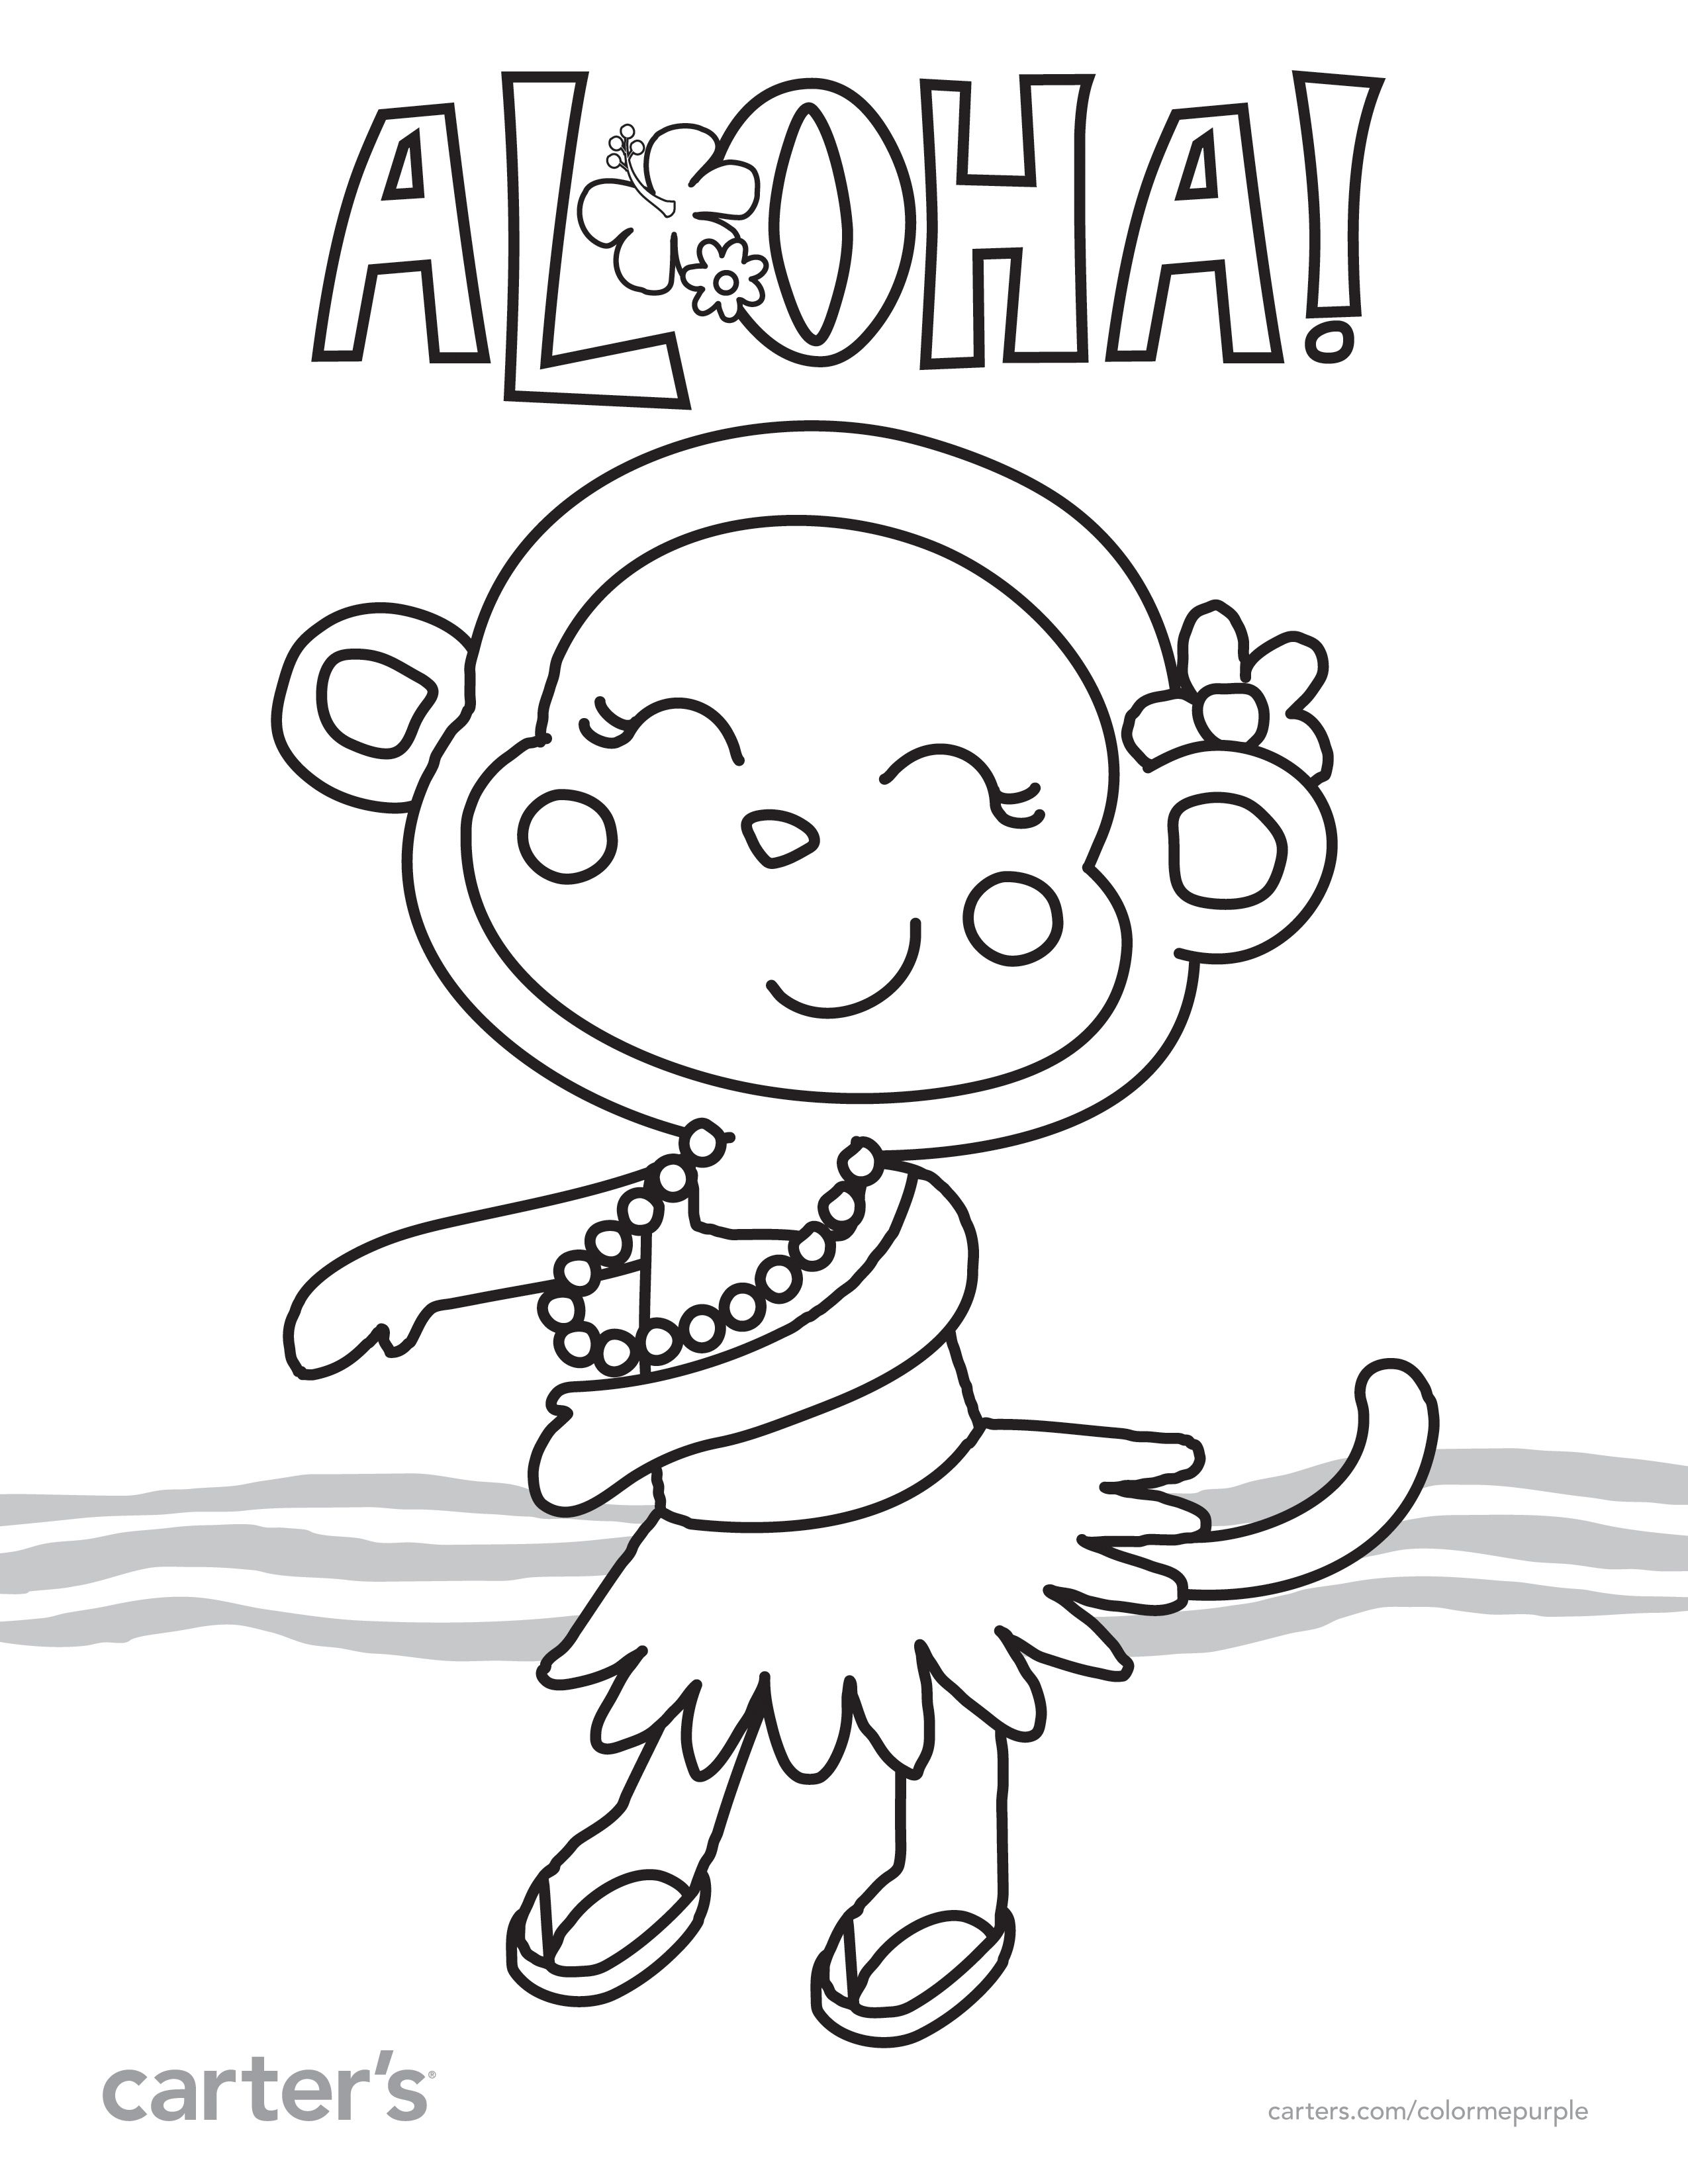 Aloha Coloring Pages At Getdrawings